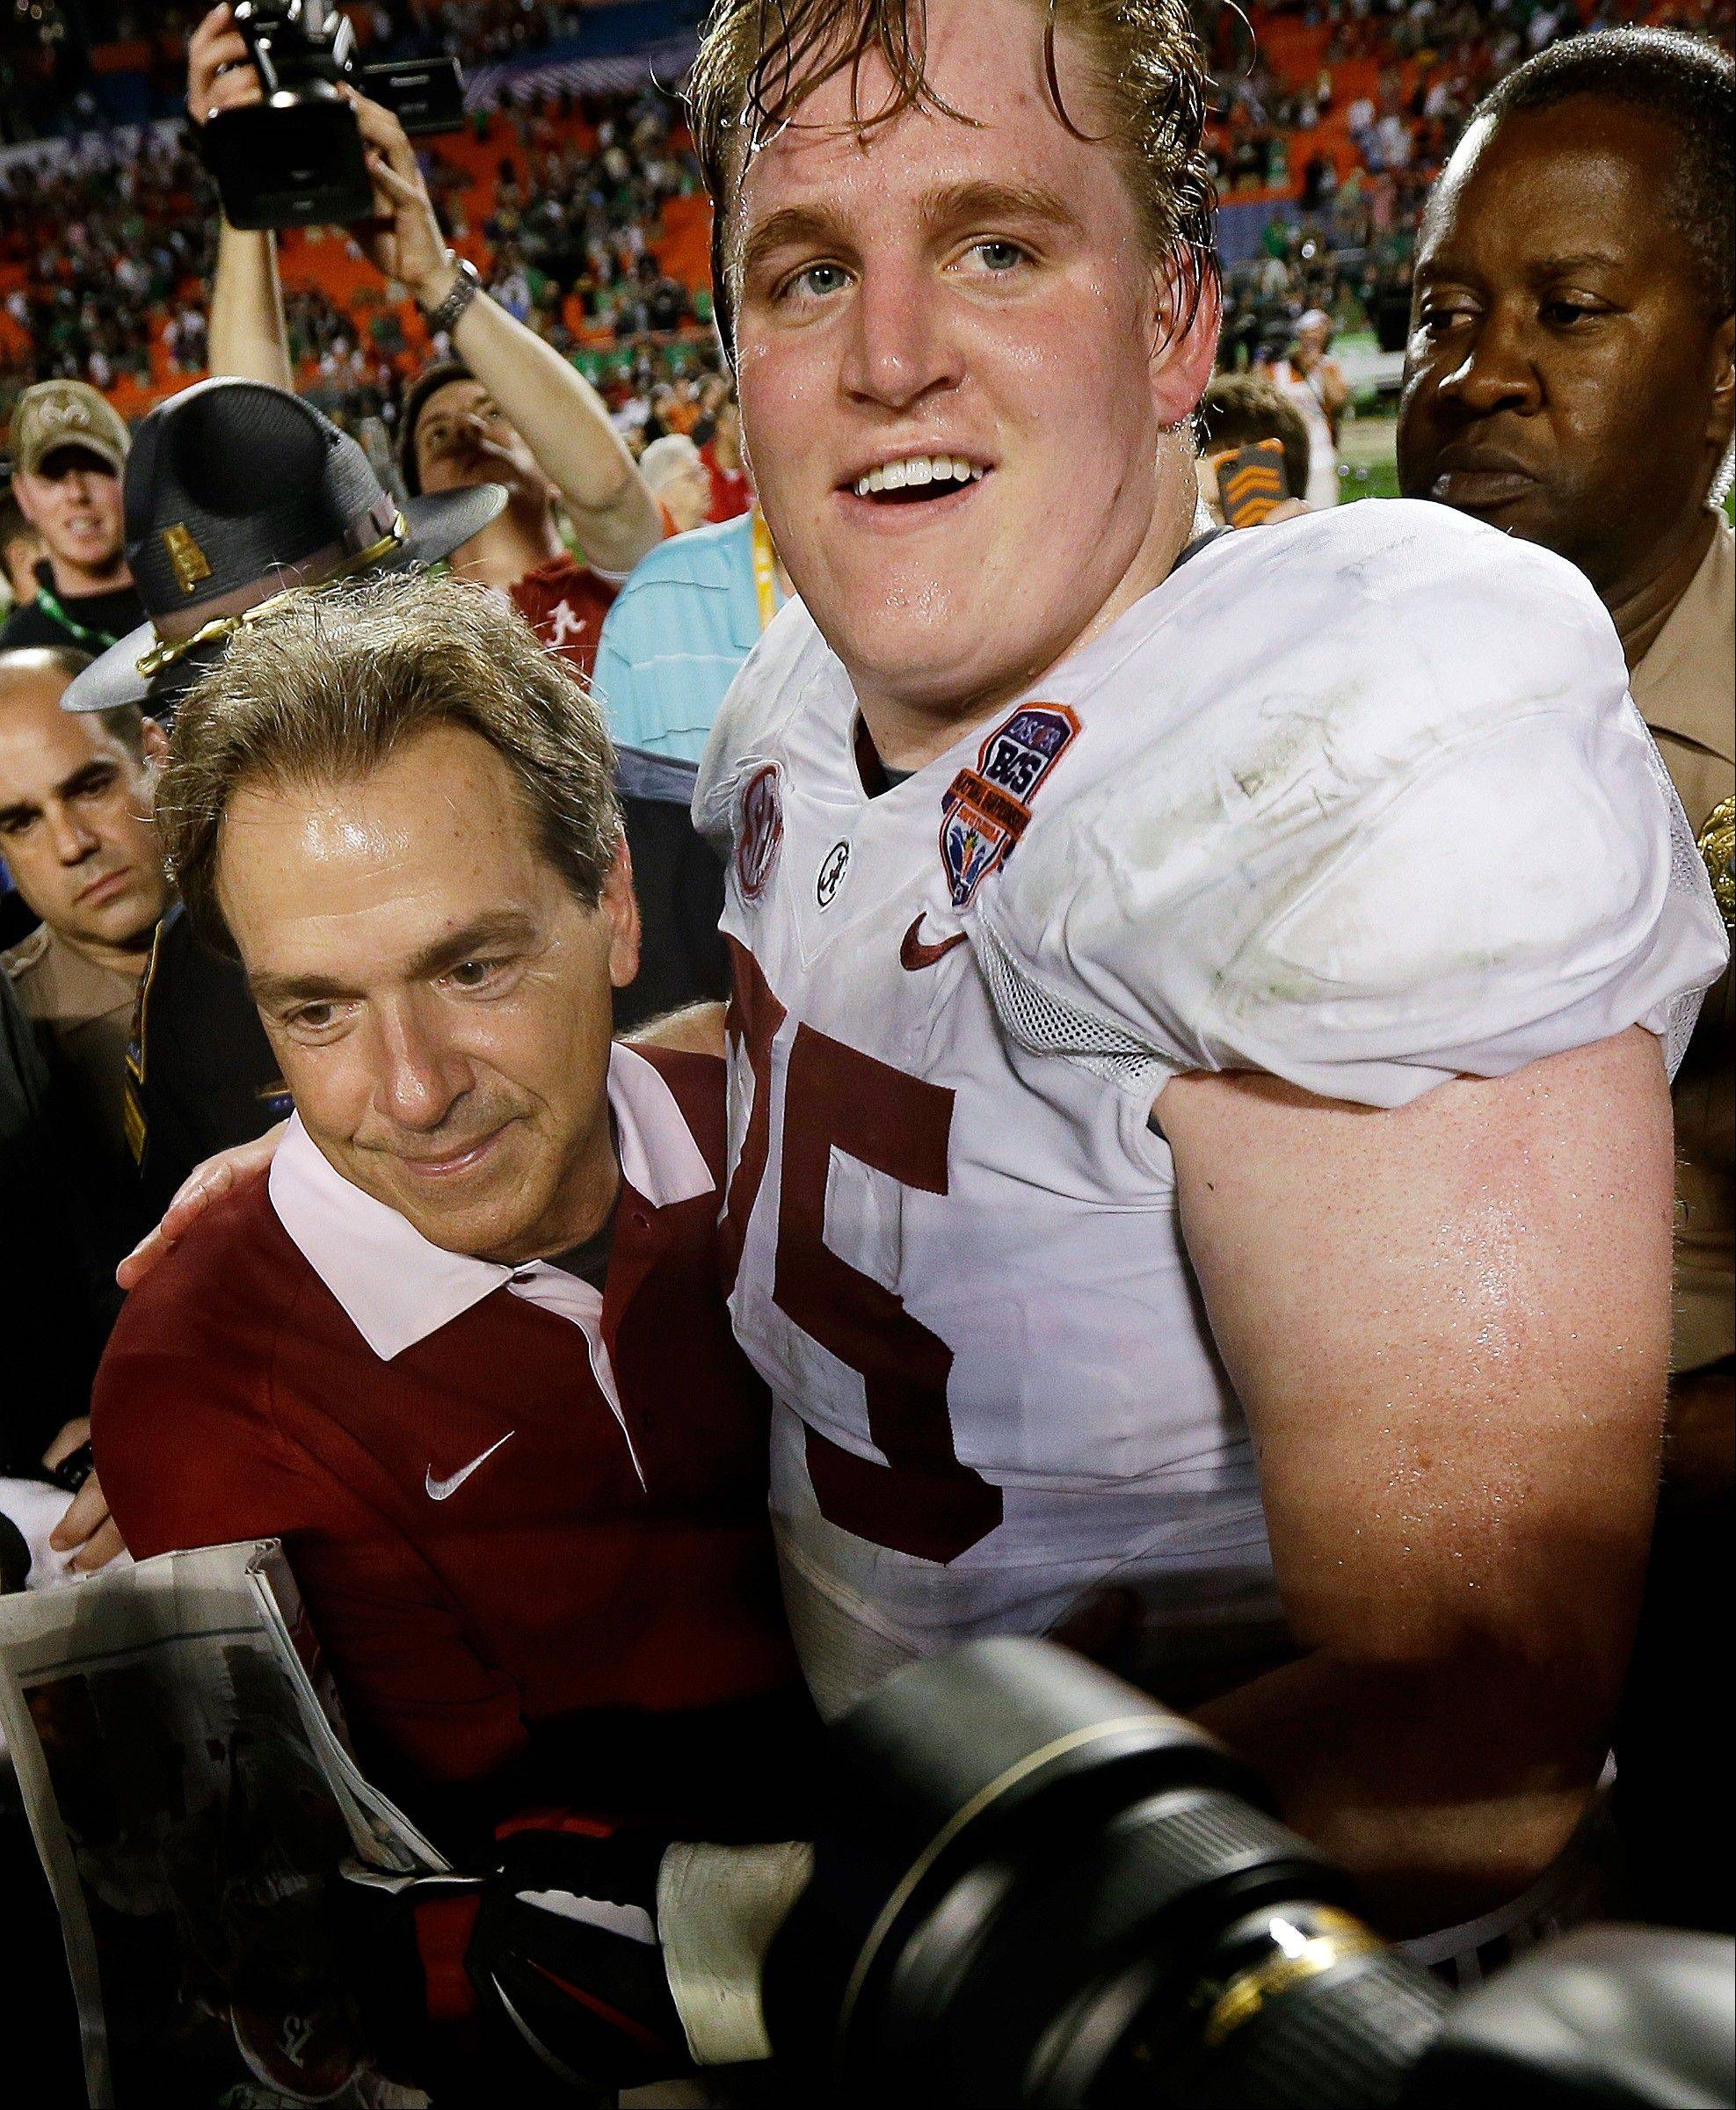 Alabama head coach Nick Saban celebrates with Barrett Jones after the BCS National Championship college football game against Notre Dame Monday, Jan. 7, 2013, in Miami. Alabama won 42-14.